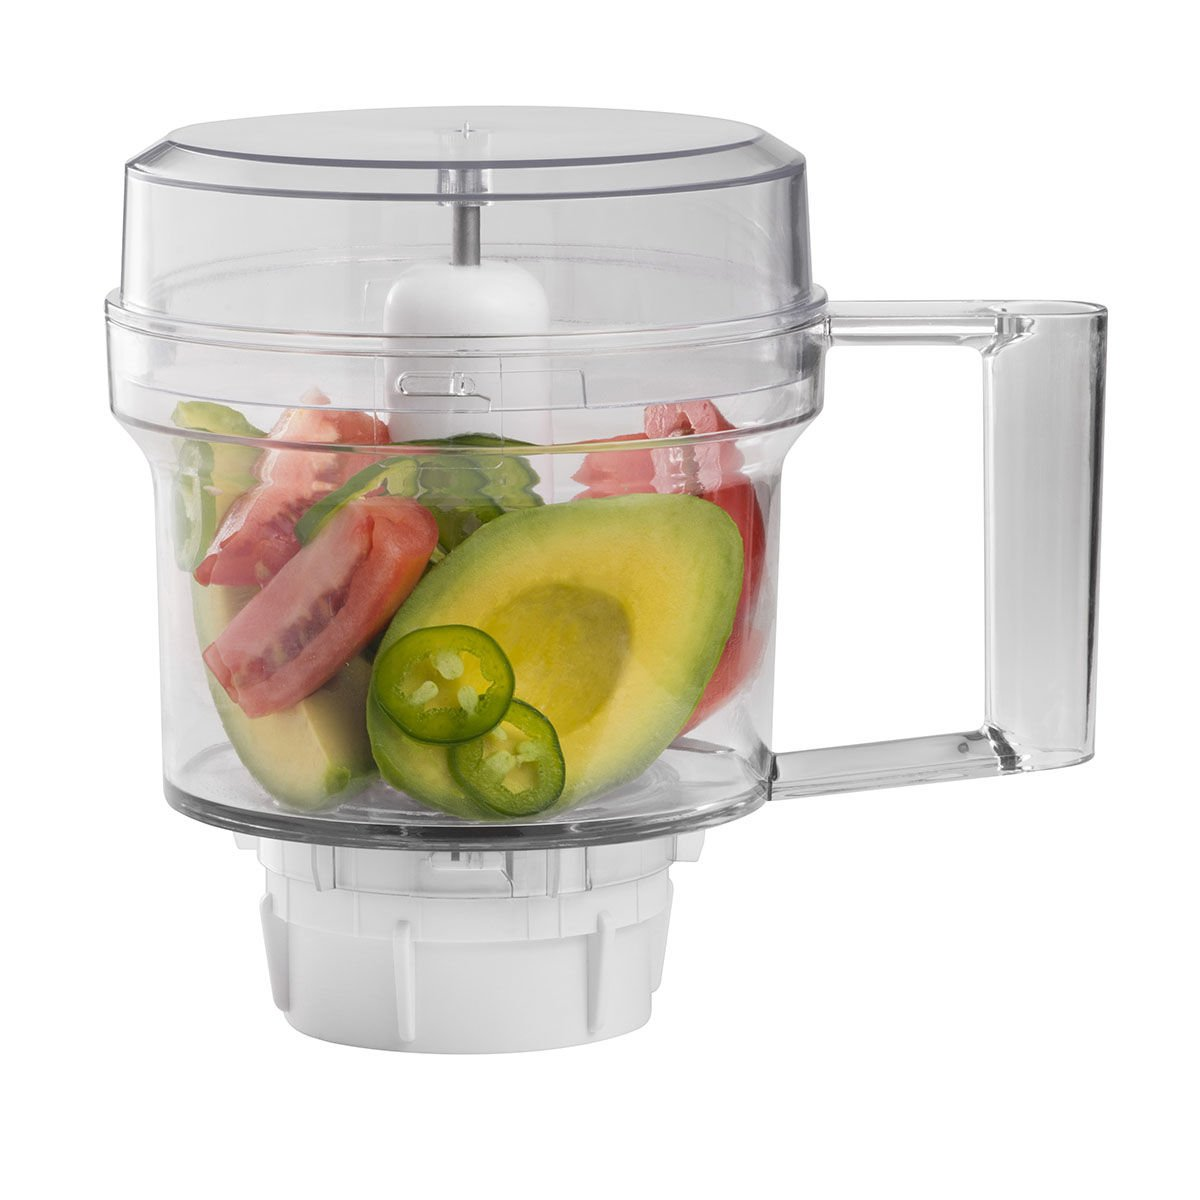 Oster Food Processor Attachment